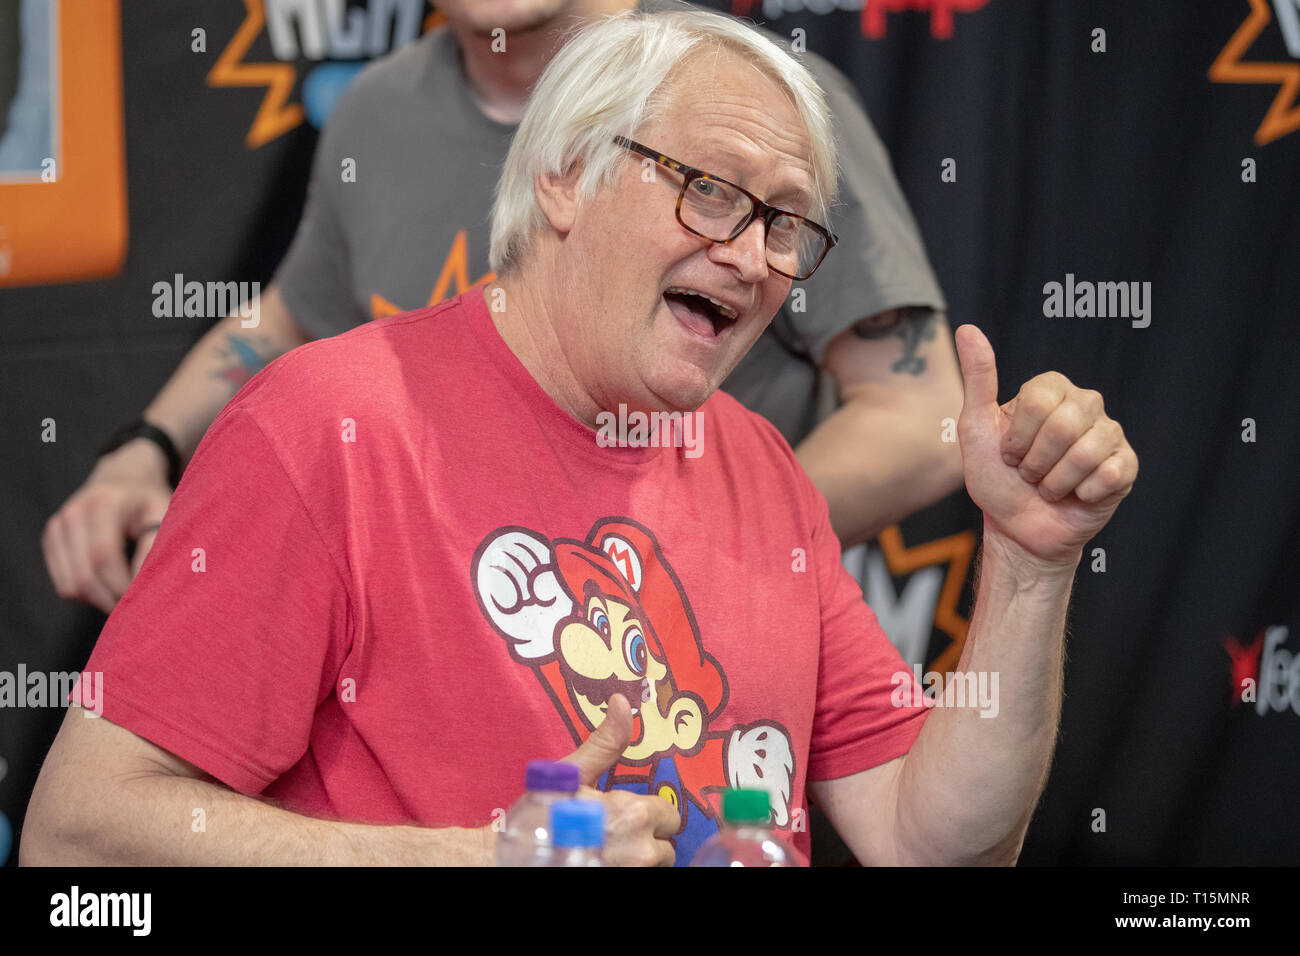 Birmingham, UK. Saturday 23 March 2019. Charles Martinet during an autograph session He is best known for voicing Mario in the Super Mario video game series, on the 1st day of the MCM Comic Con Birmingham at the NEC  , © Jason Richardson / Alamy Live News - Stock Image